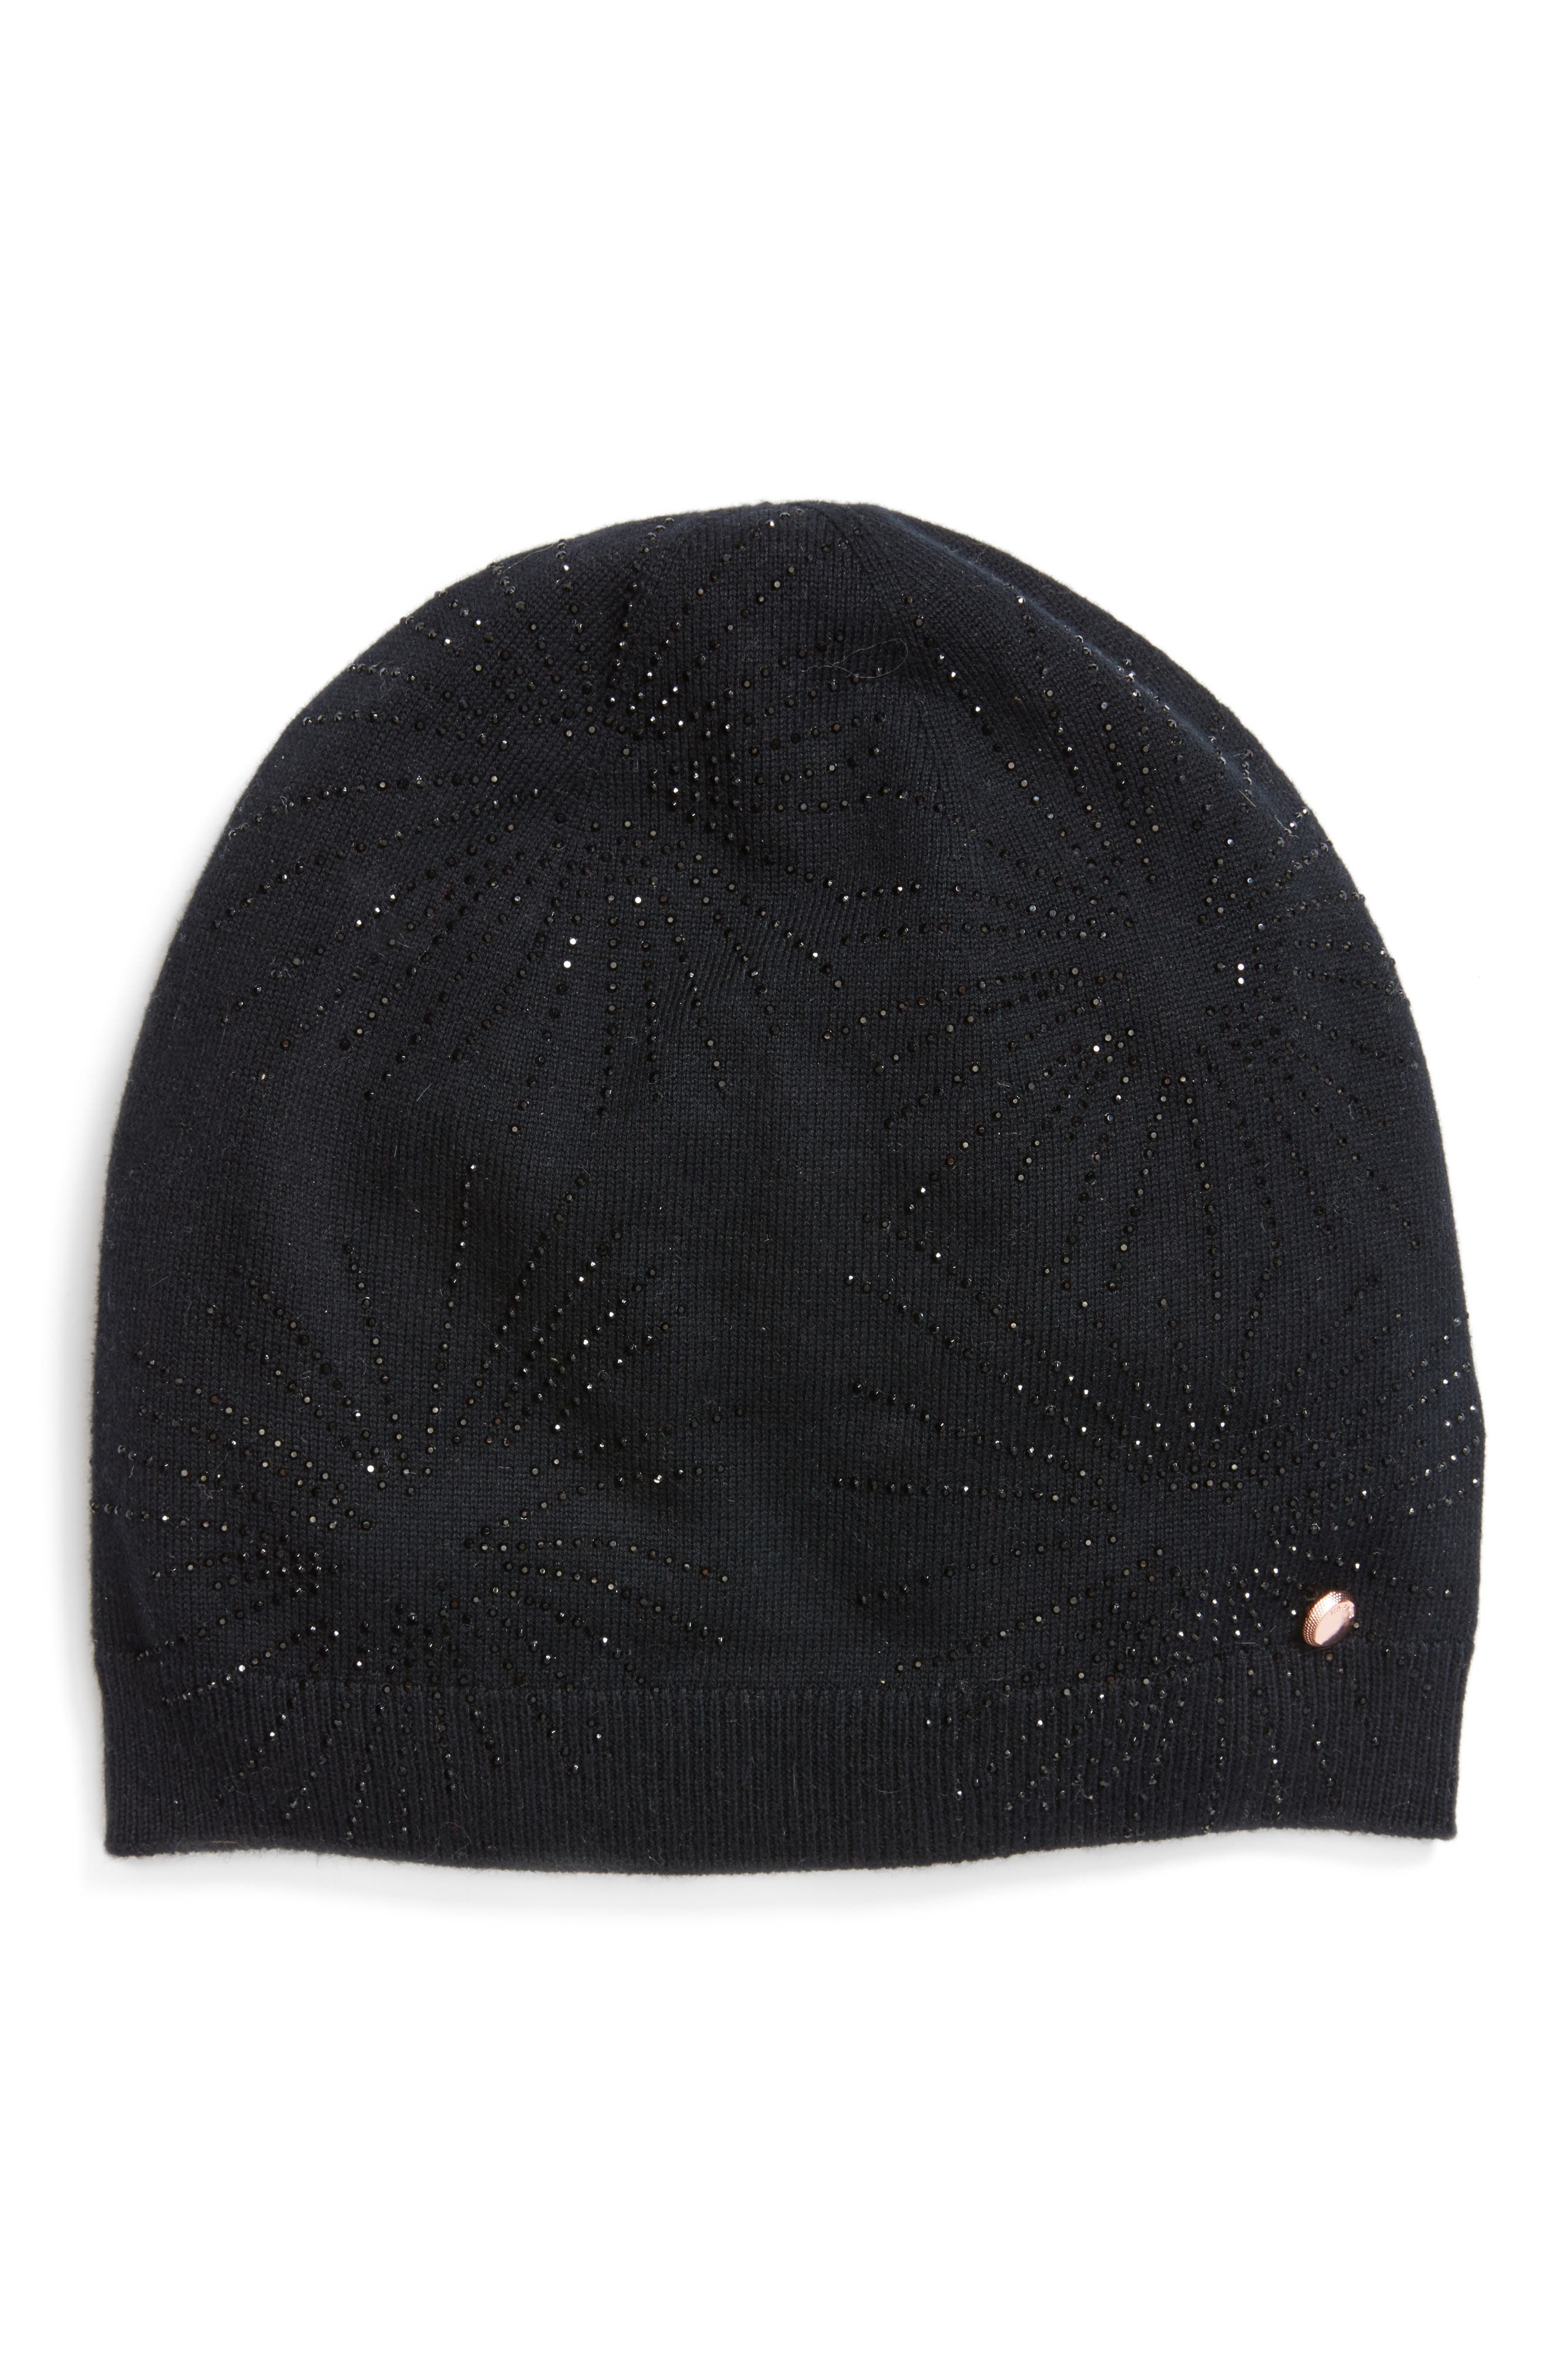 Stardust Embellished Knit Beanie,                         Main,                         color, Black